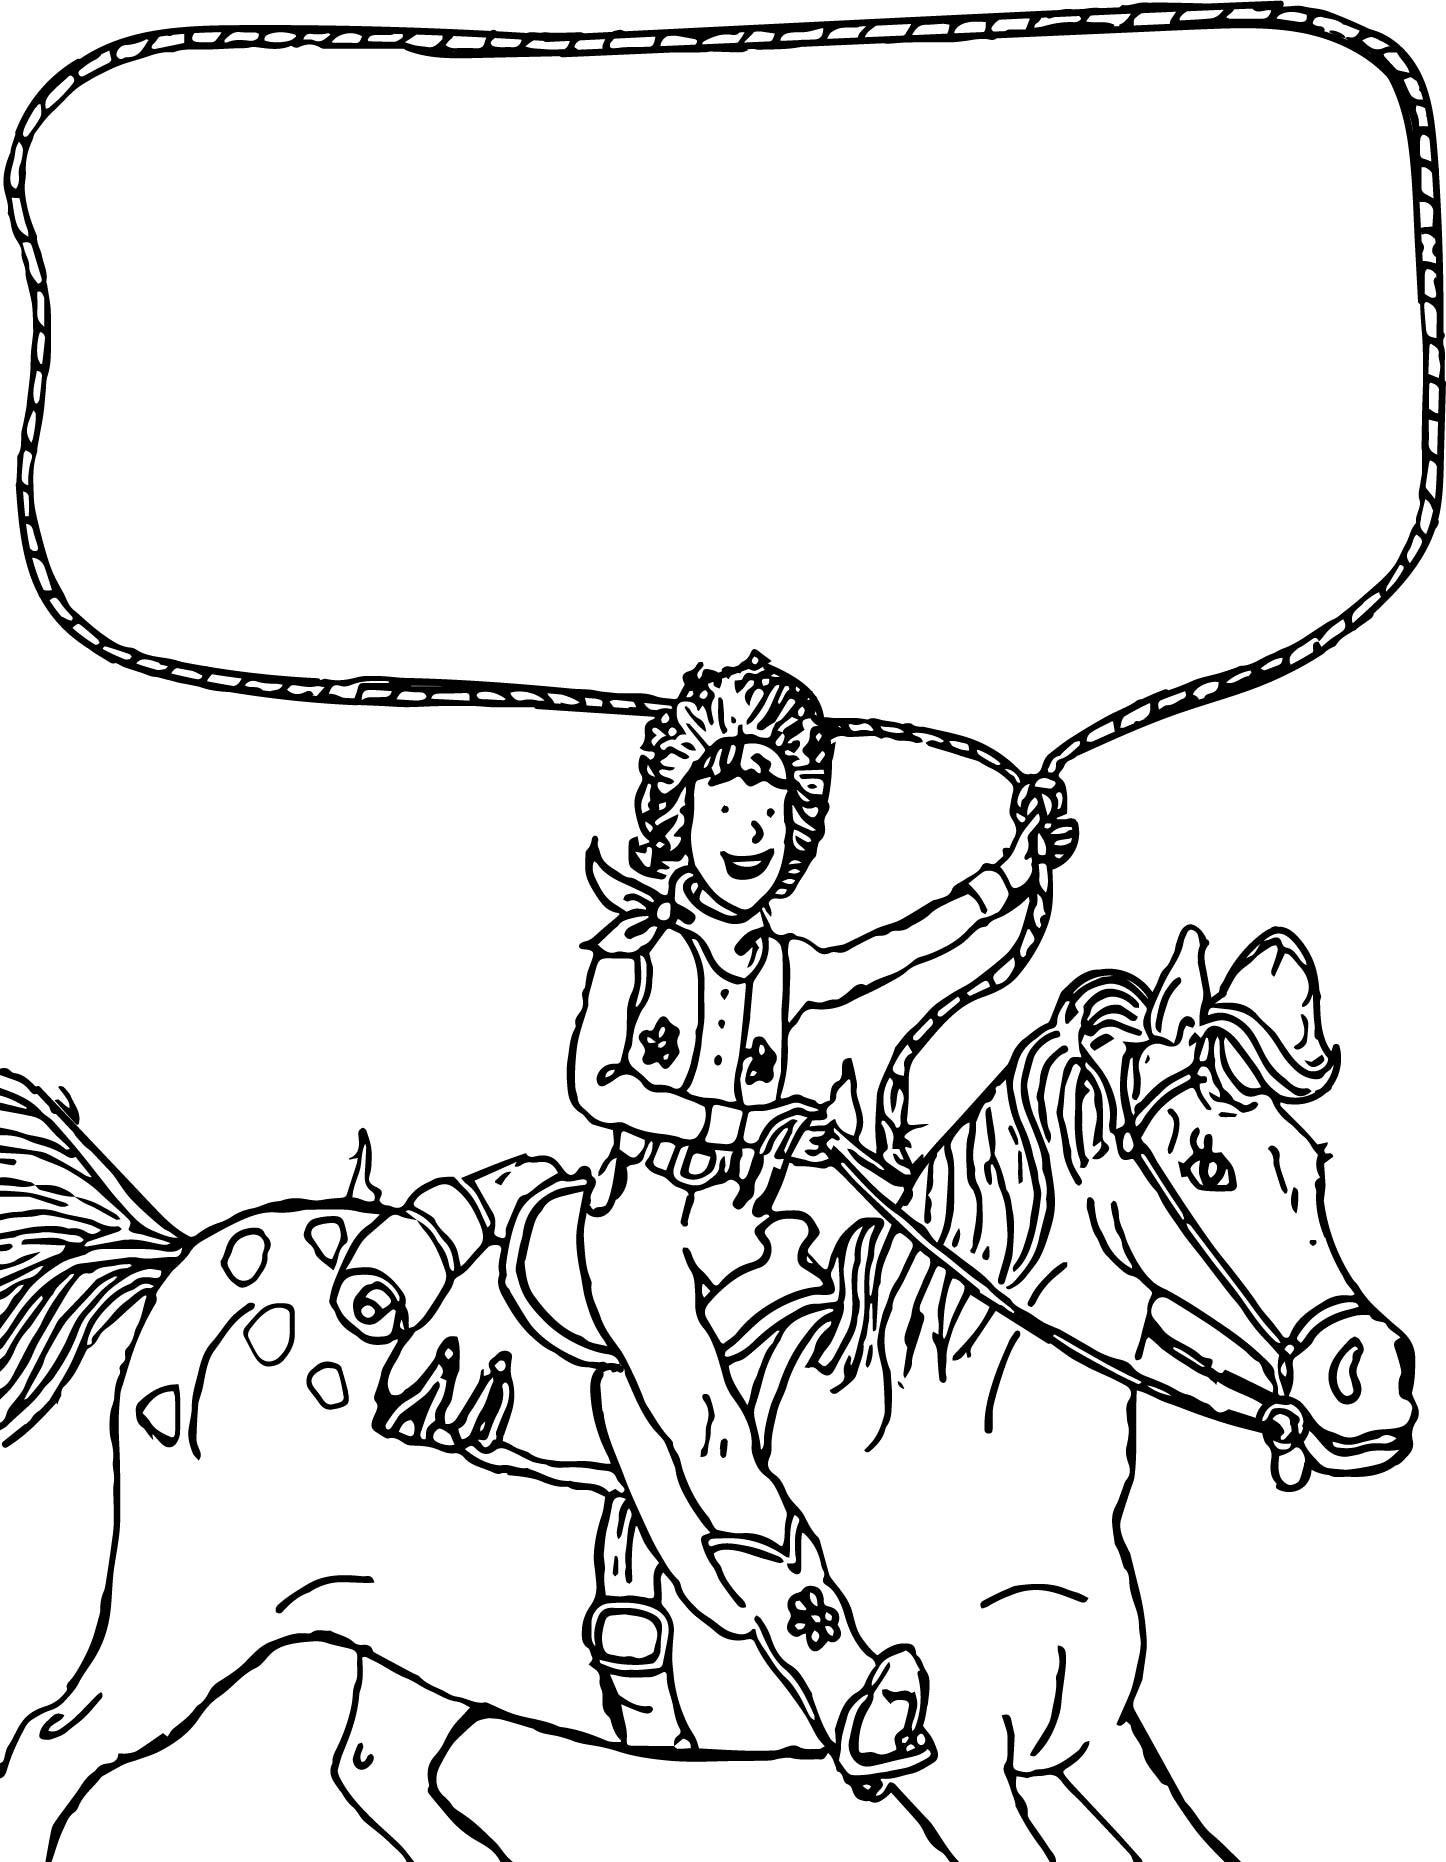 1446x1862 Appealing Go West Amelia Bedelia On The Horse Coloring Page